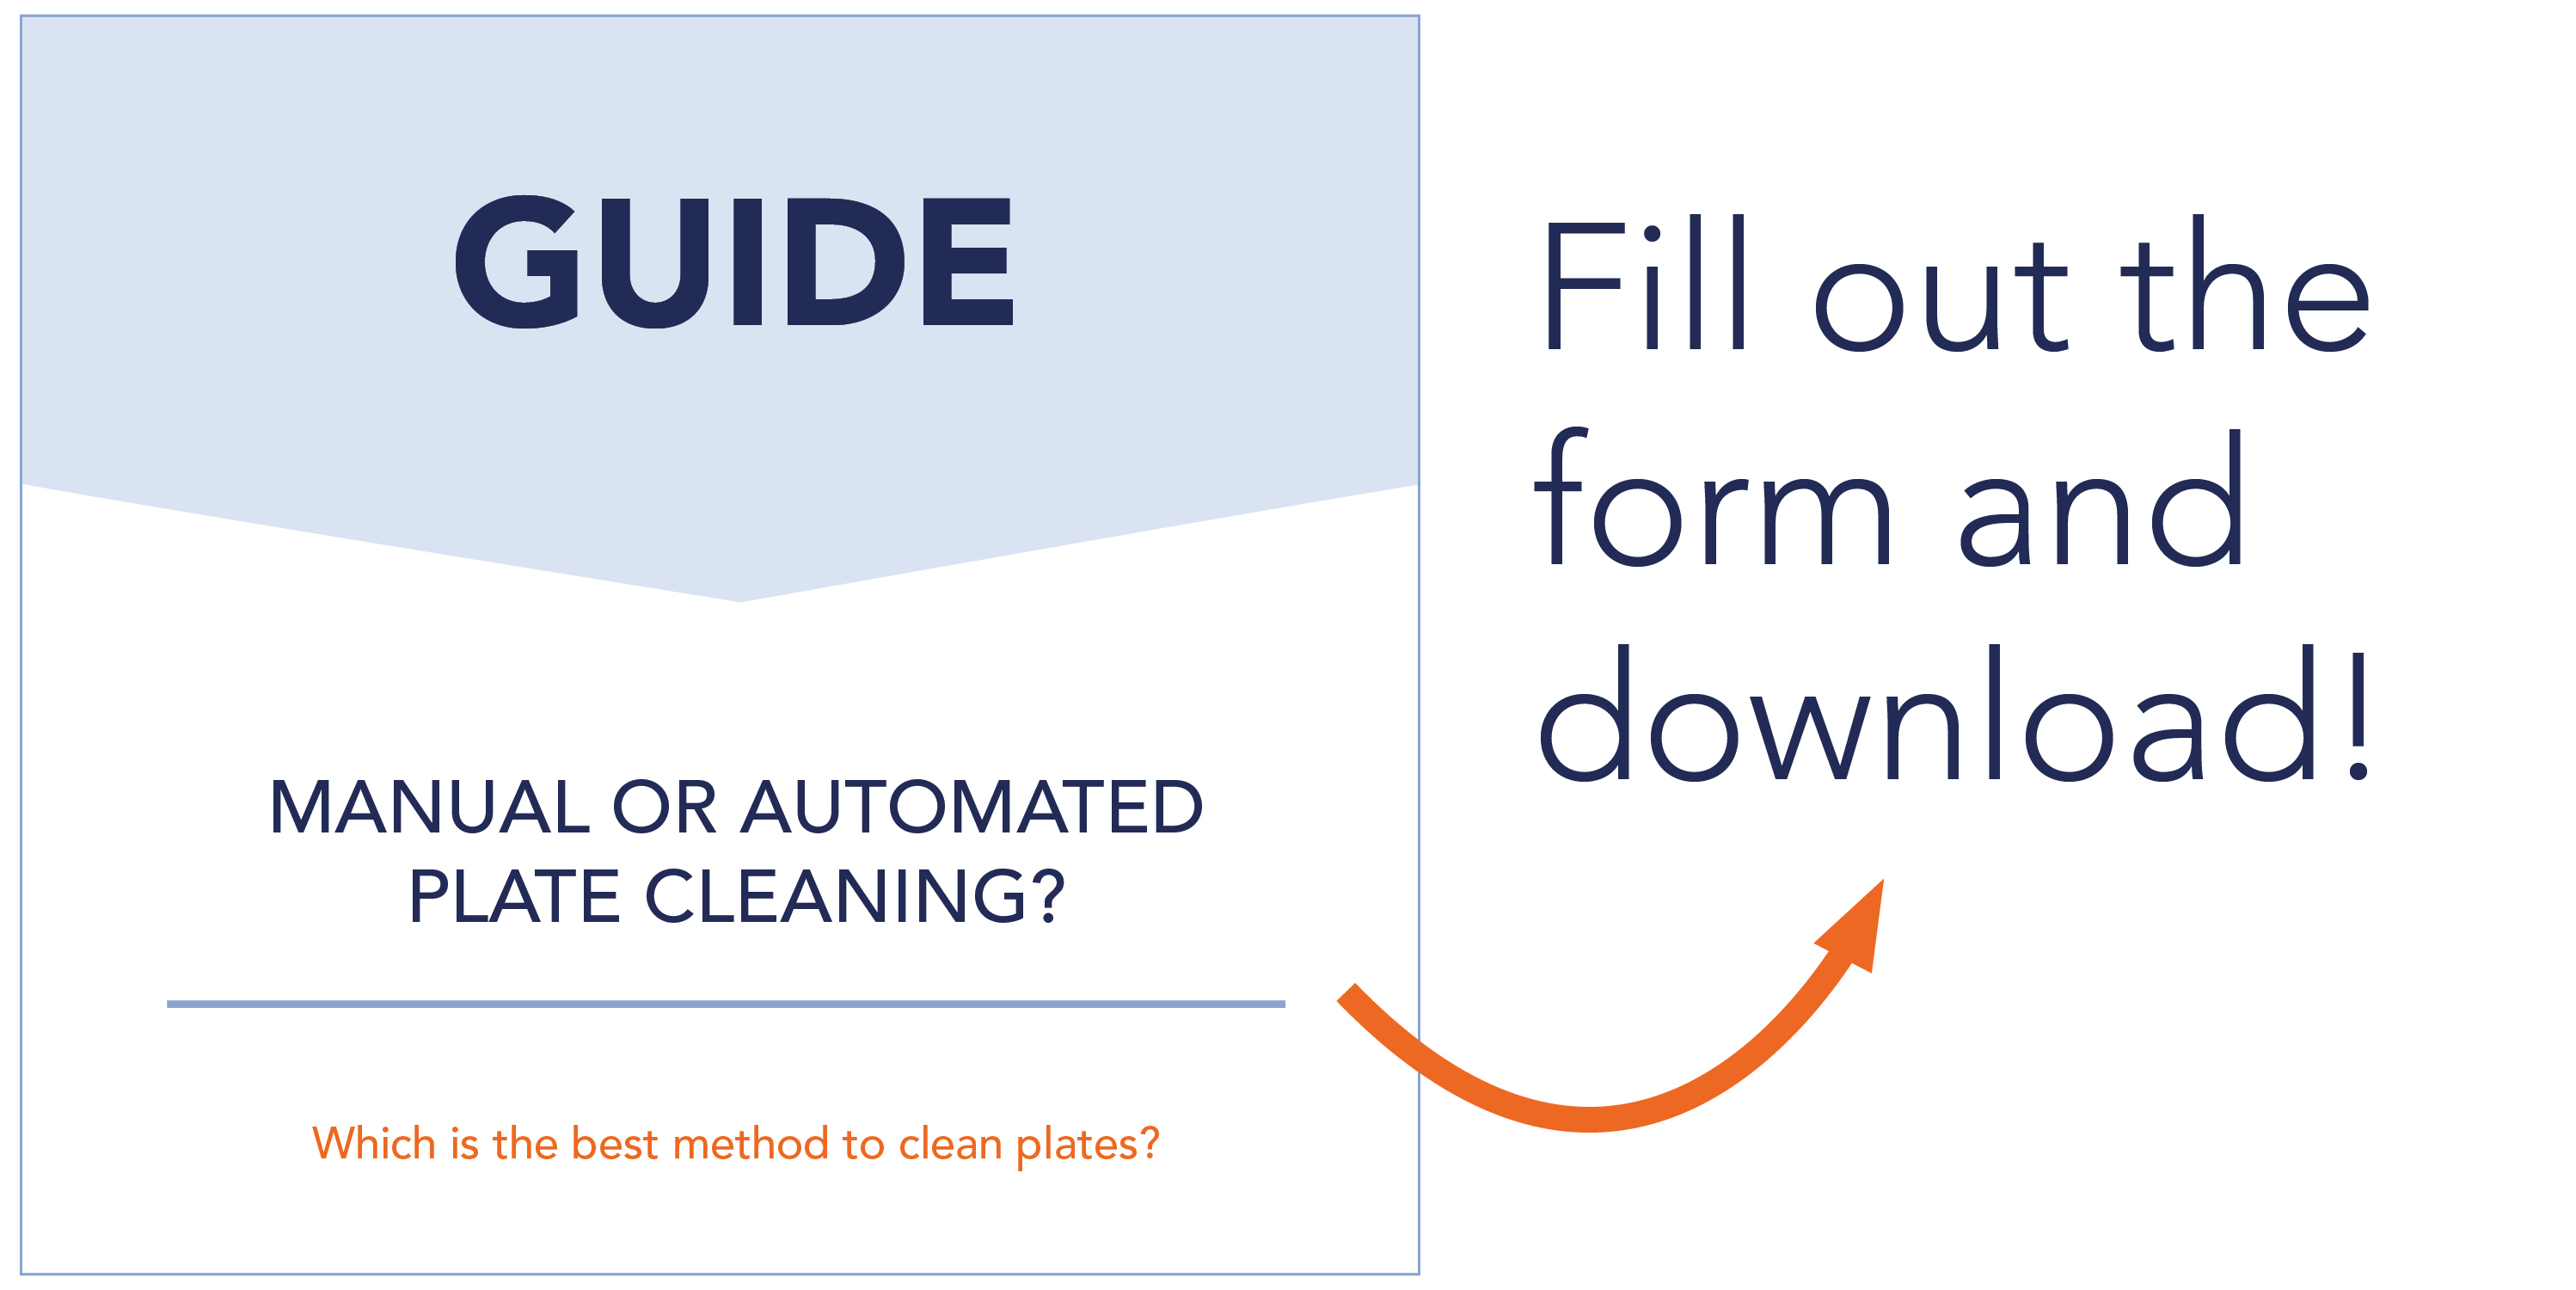 Image_guide_manual or automated plate cleaning_1